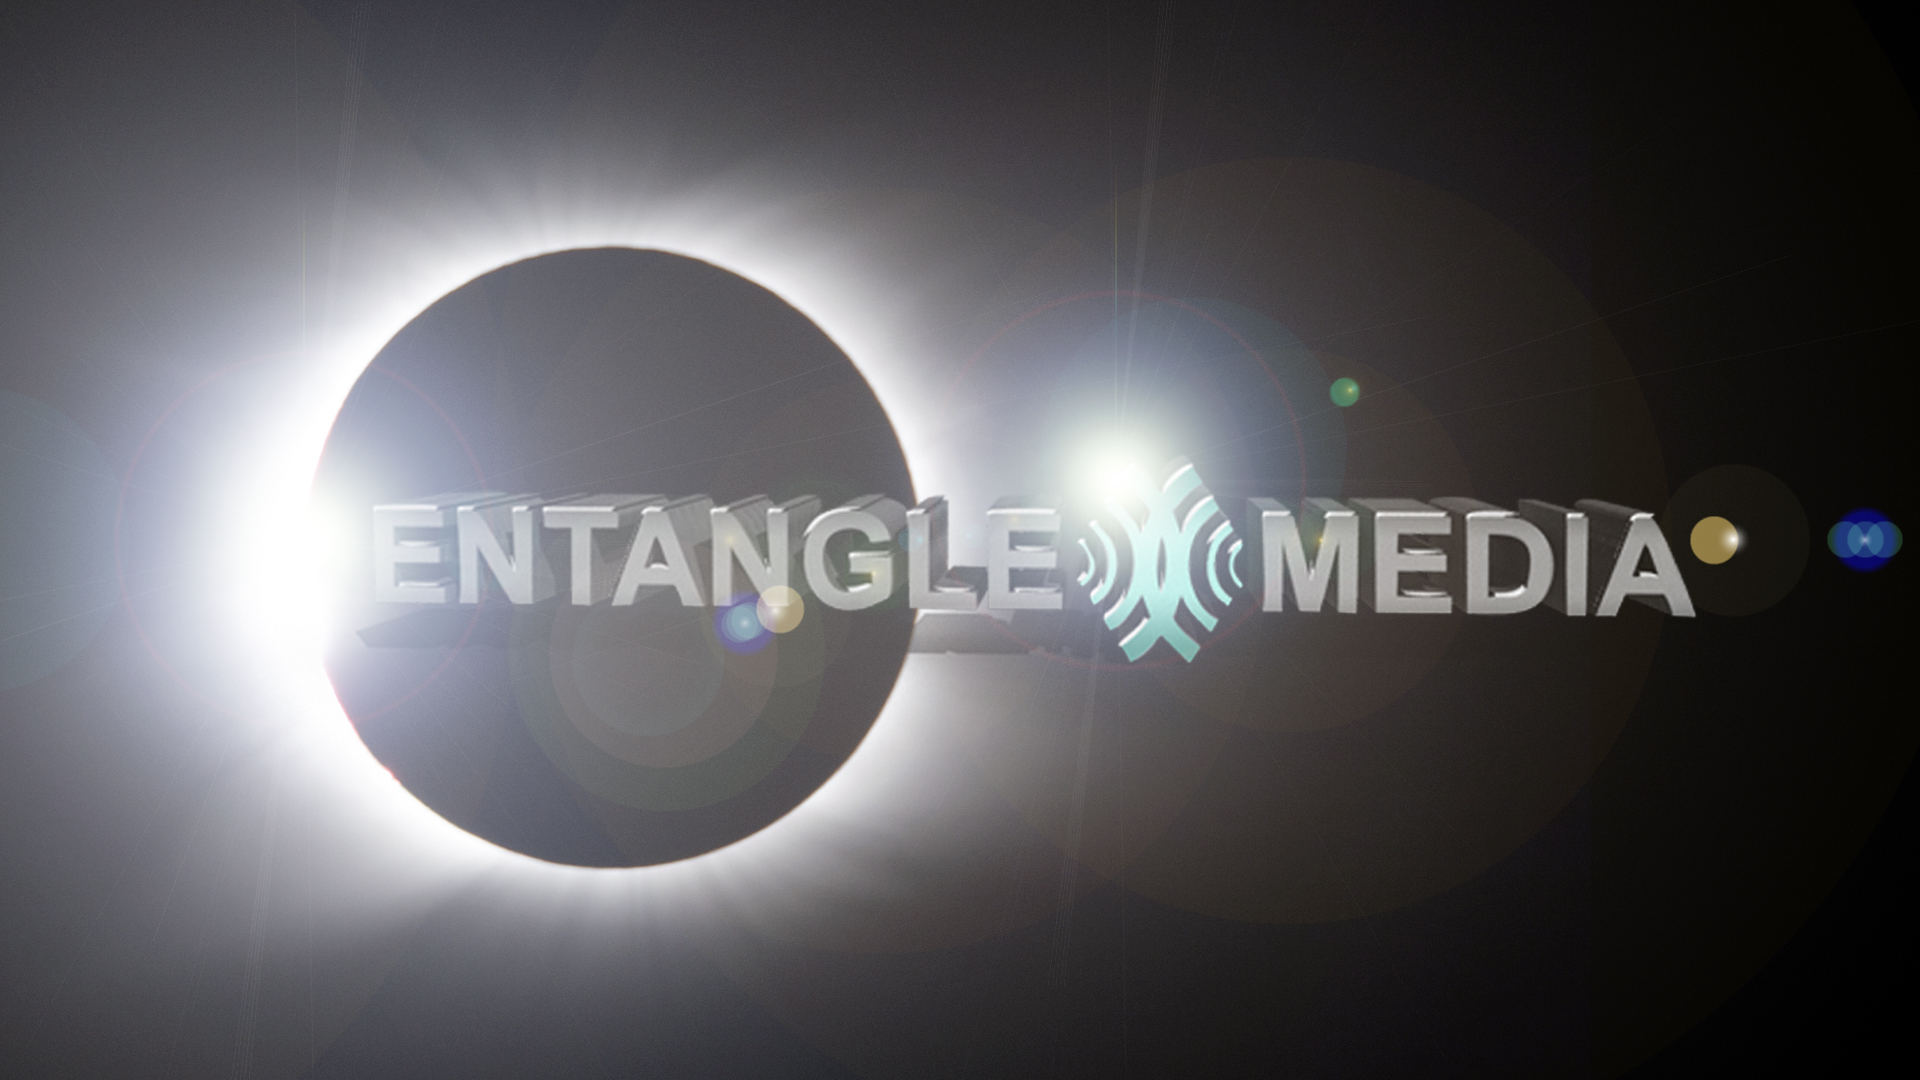 Entangle Media launches new site design at start of solar eclipse